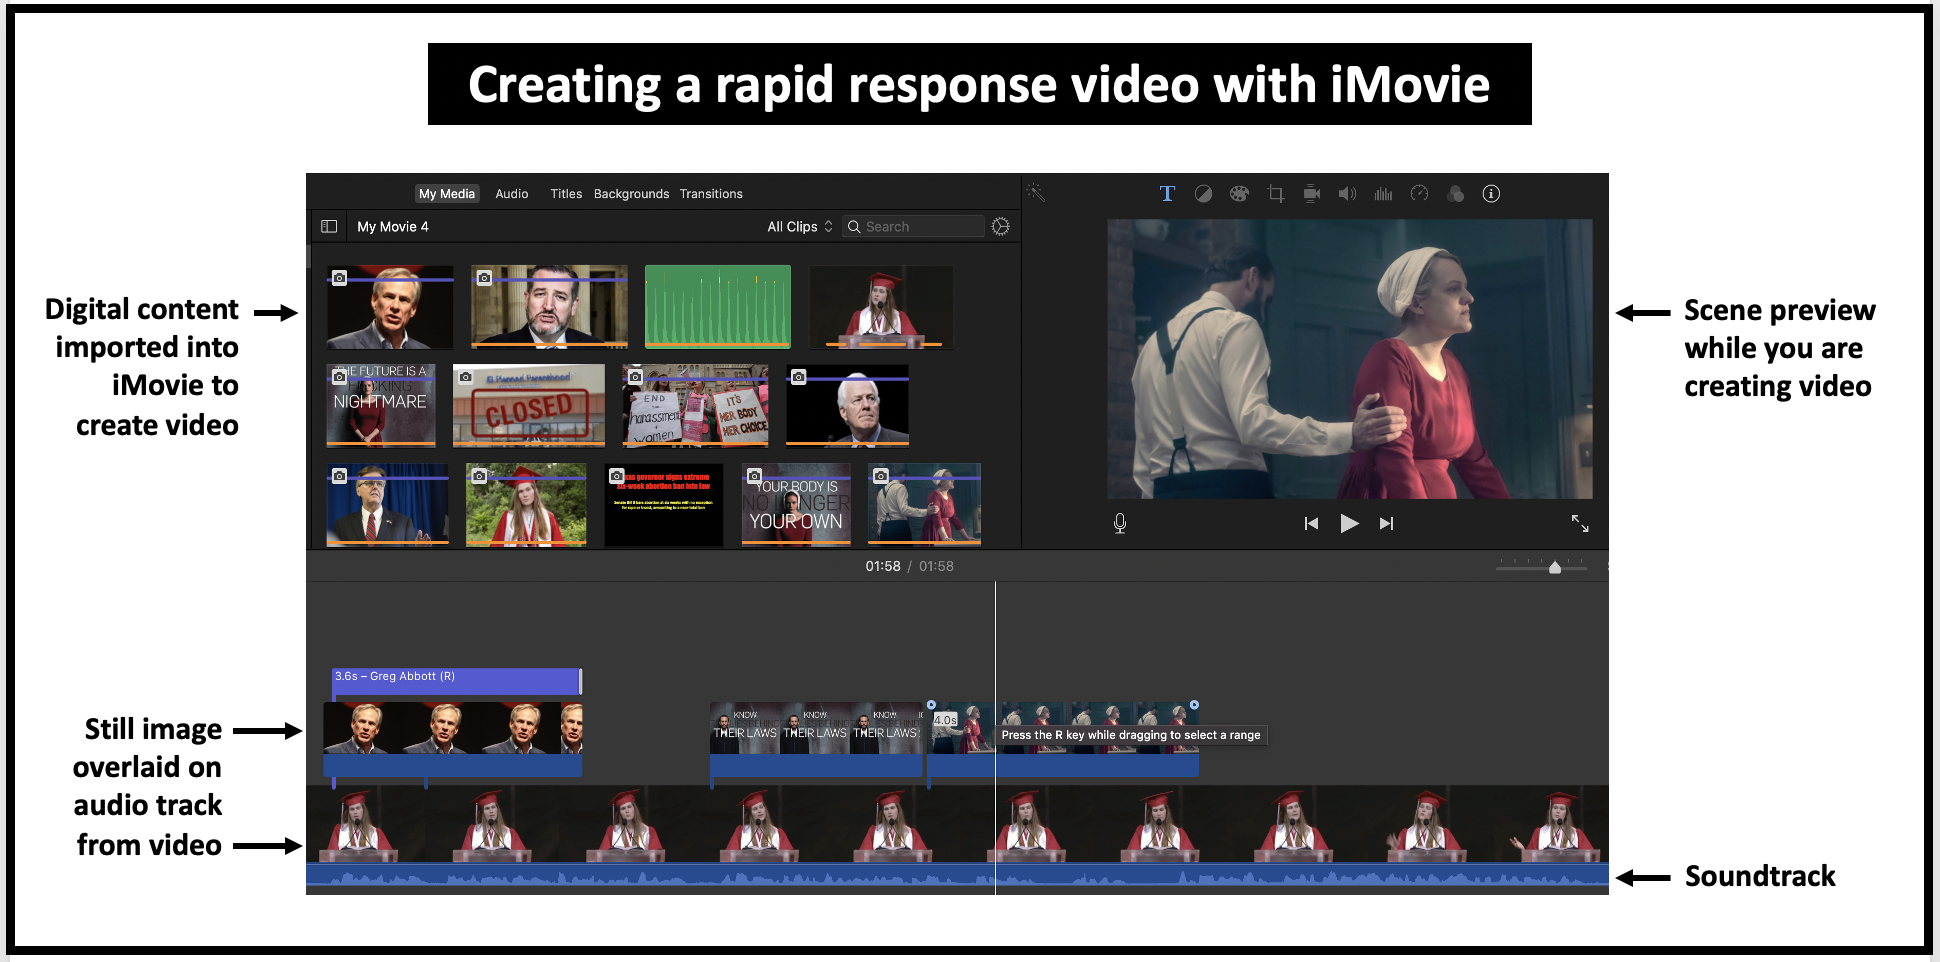 Use iMovie to create rapid response videos for your cause. It is fast, free and easy to use.